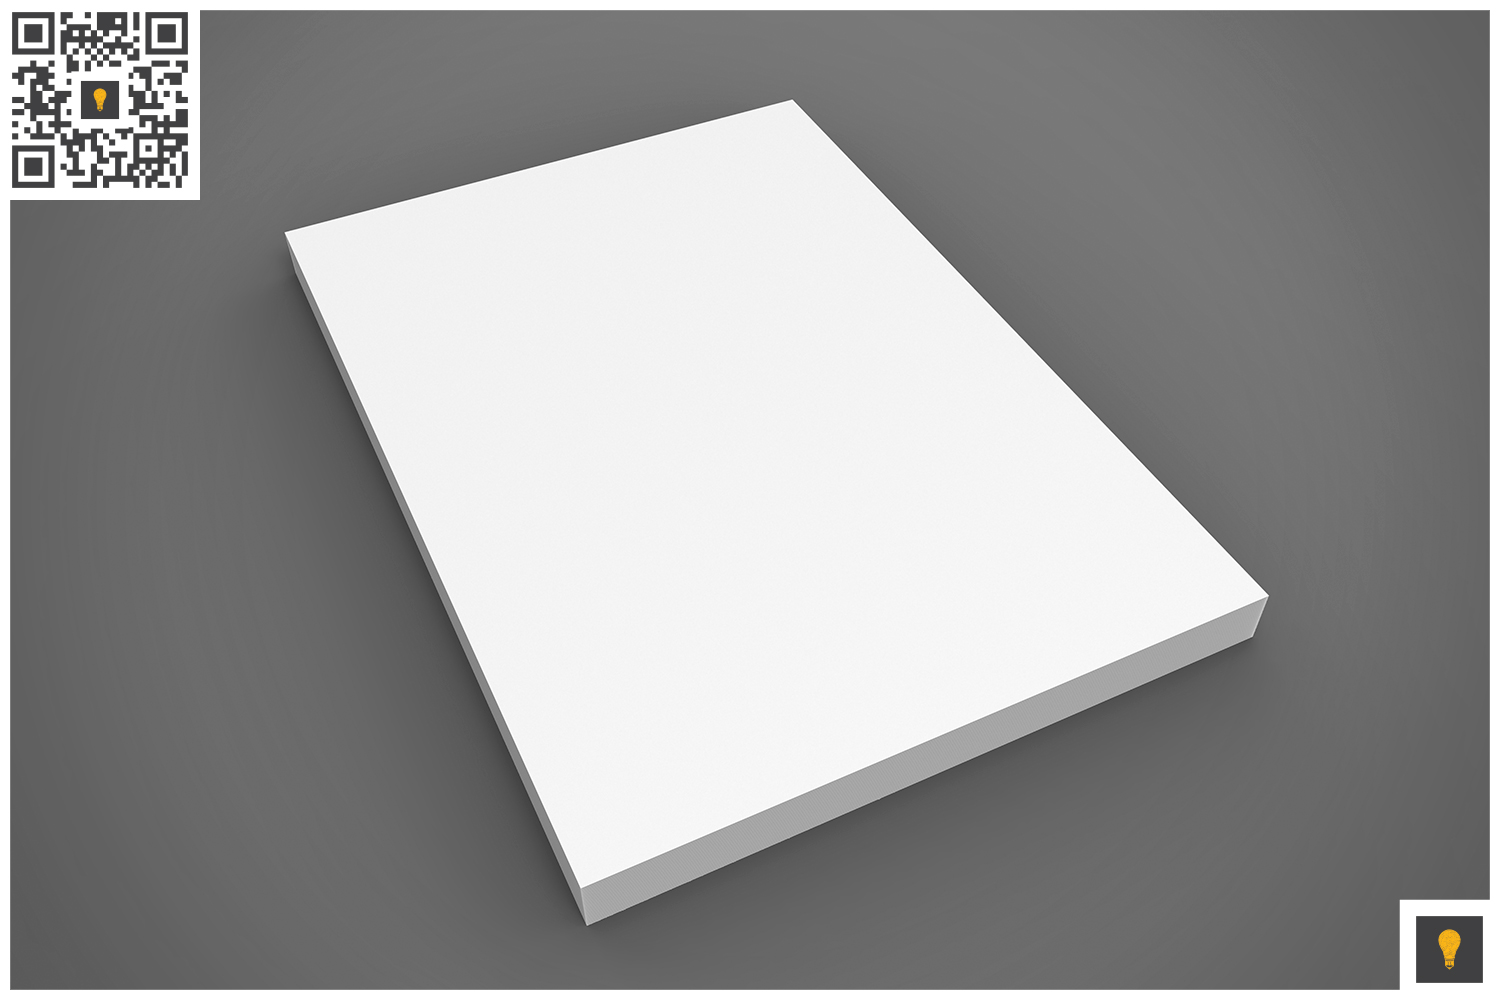 Branding Stationary 3D Render example image 8